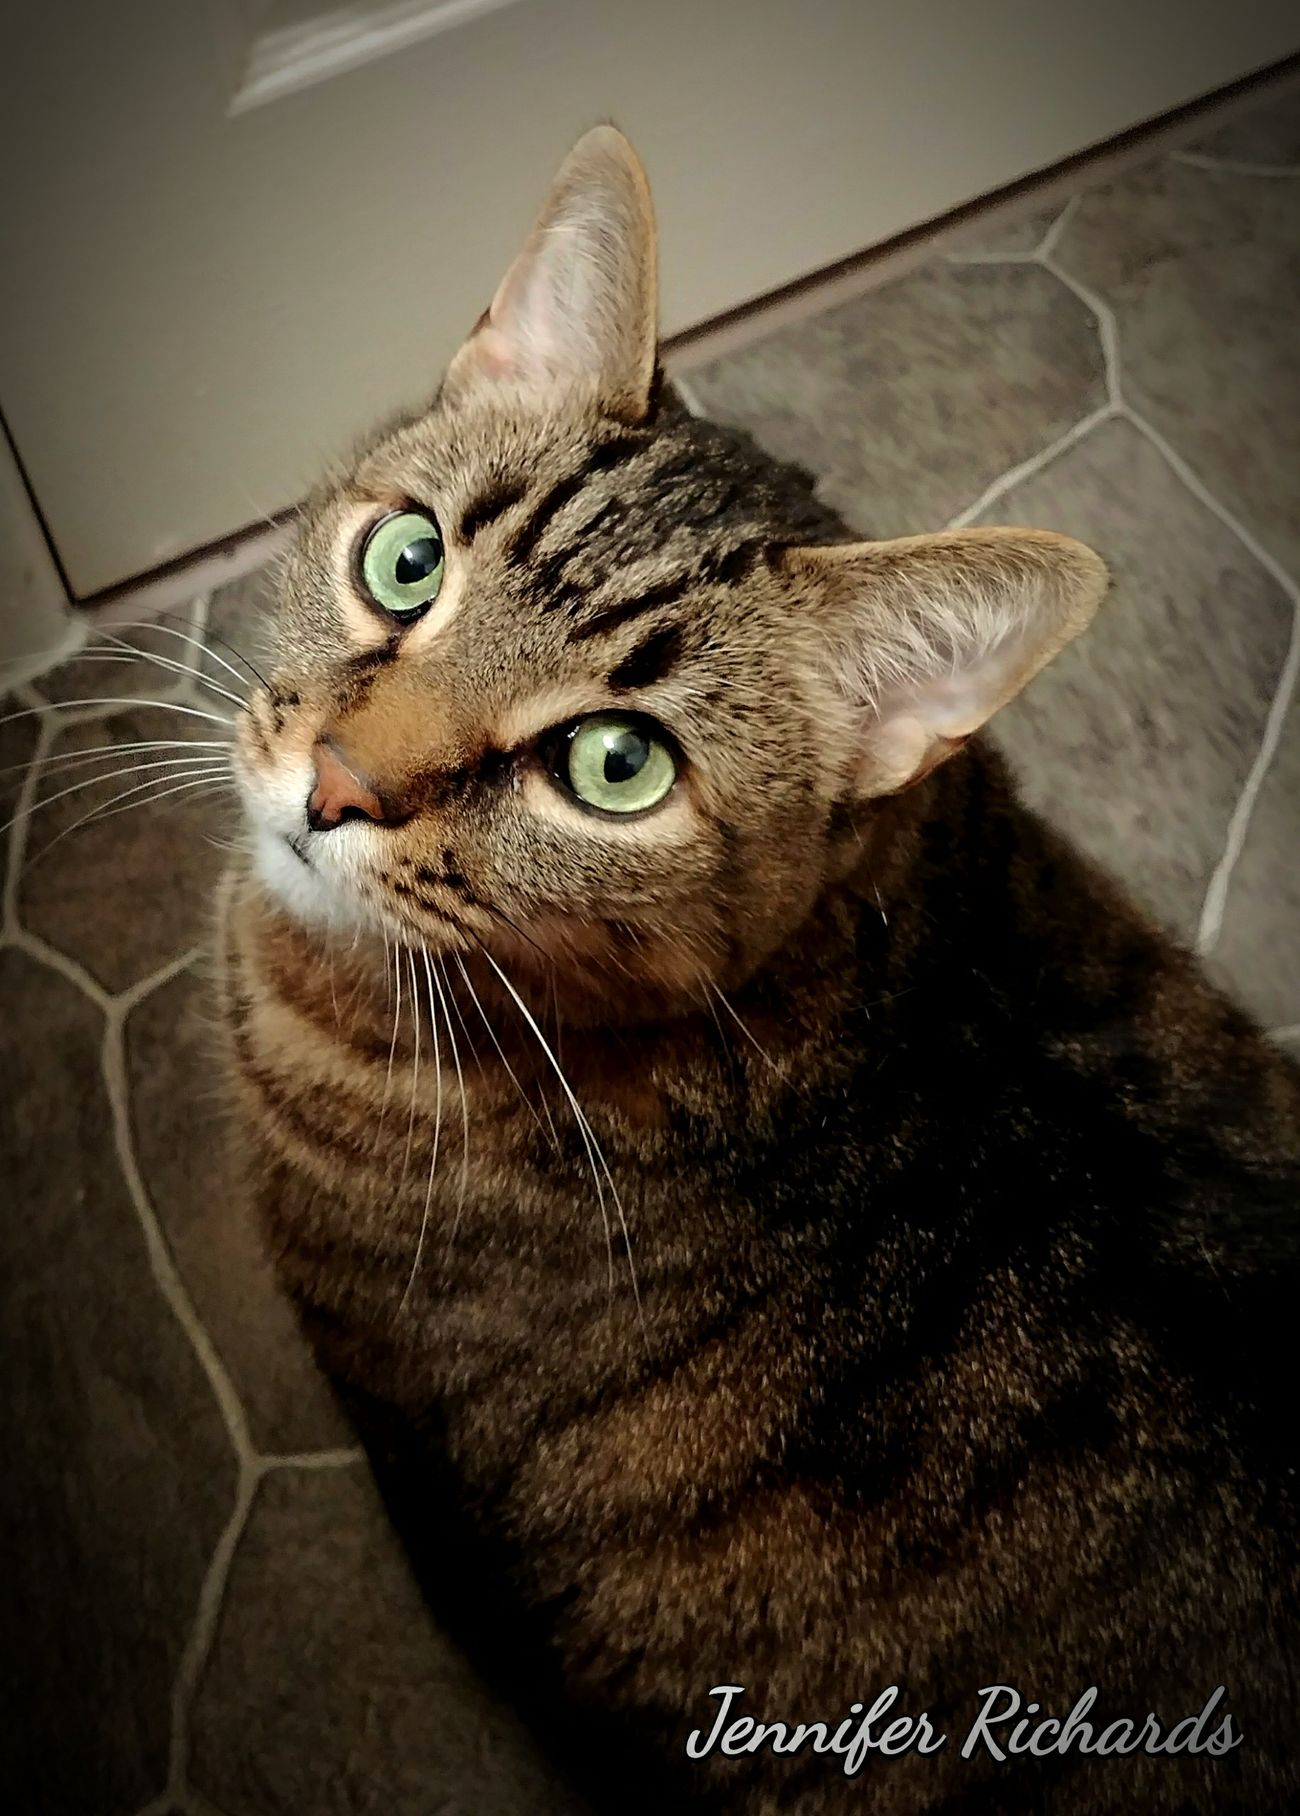 My handsome Boomer..He likes to sit in the bathroom with me 😊 One Animal Domestic Cat Pets Domestic Animals Indoors  Mammal Close-up Hanging Out EyeEm Taking Photos Eyeemphoto The Week On Eyem Hello World Not Strange To Me Eye Em Around The World Check This Out Cat♡ Cats Cats Of EyeEm